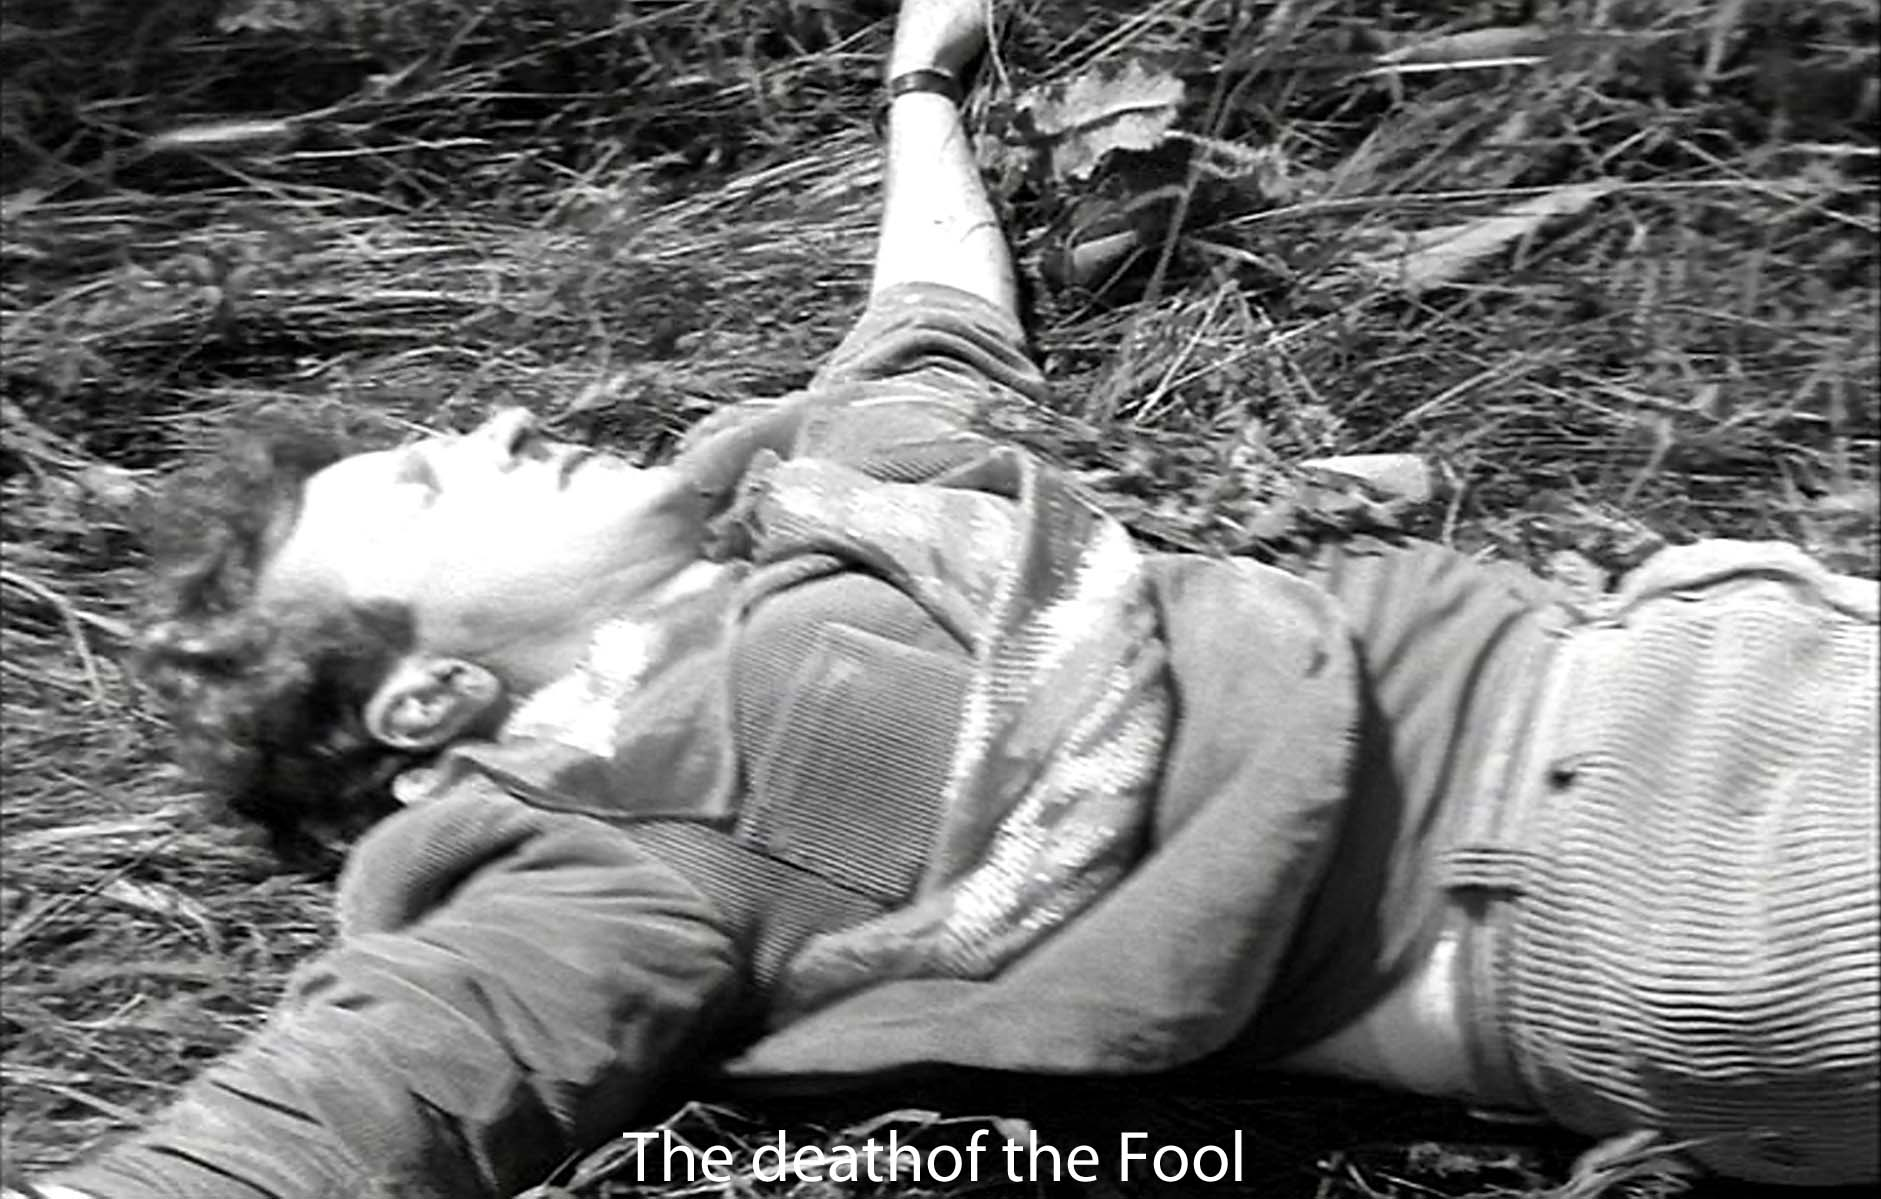 The death of the Fool